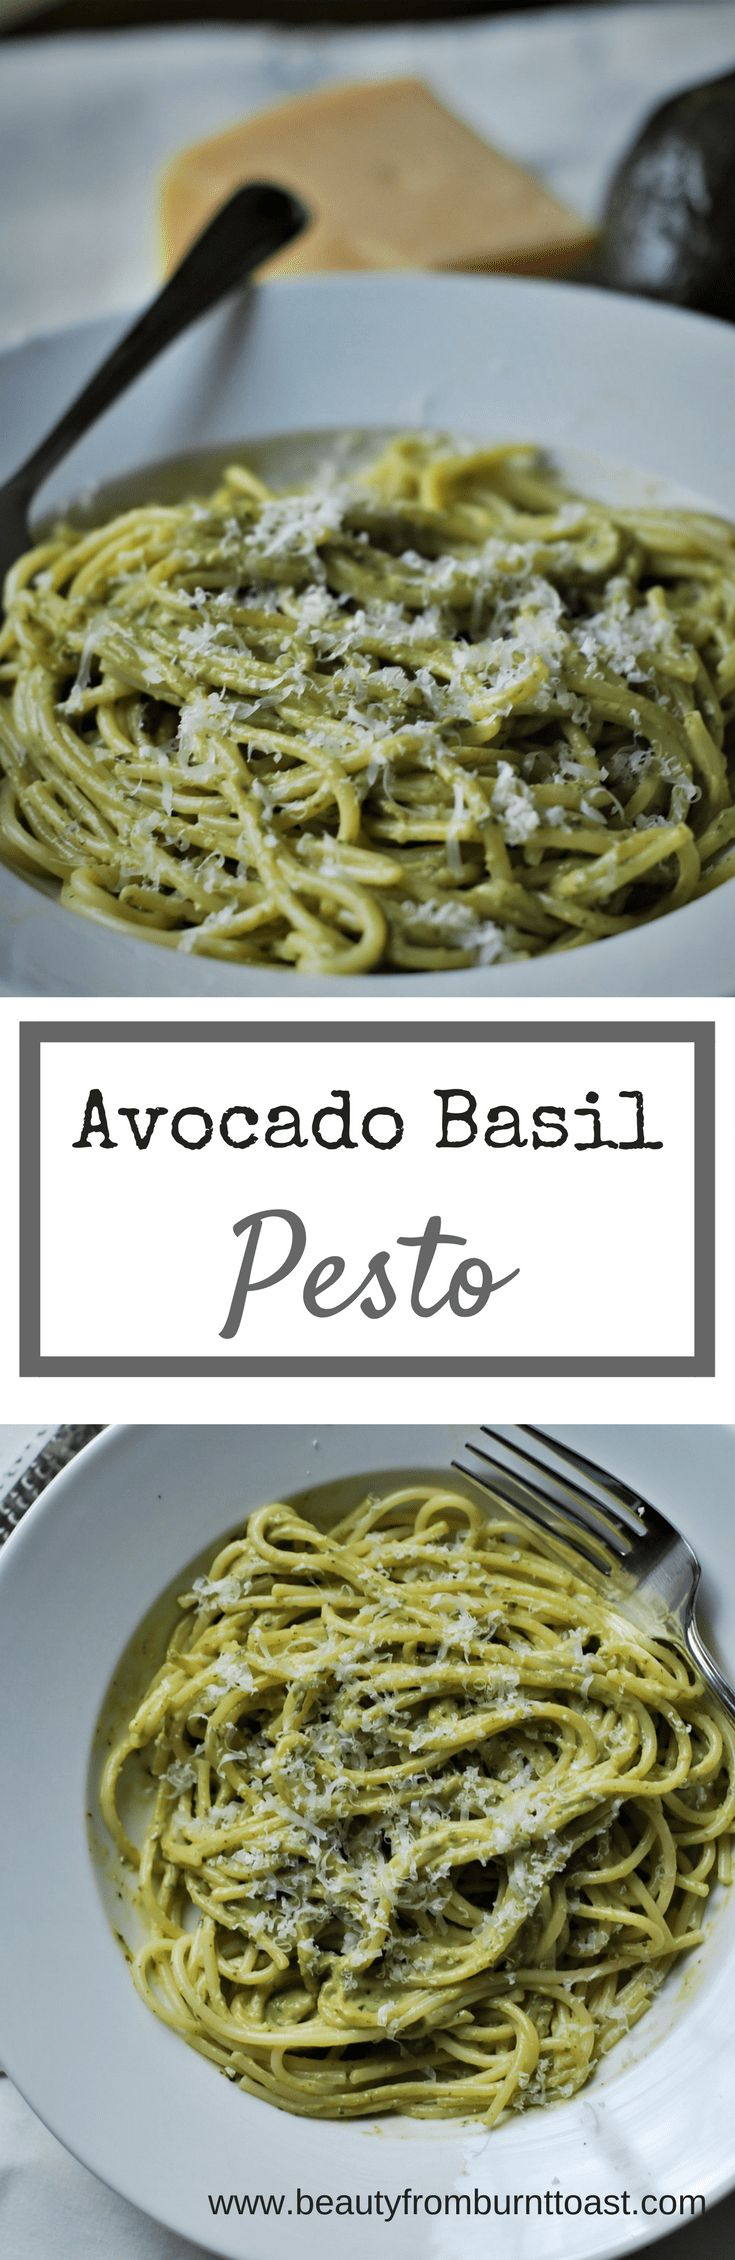 What happens when you combine avocado and basil in a pesto? Magic! This delicious, creamy sauce is a true all-purpose gem. Amazing on pasta but just as good on toast, shrimp or chicken, this pesto is an update on the classic and arguably better. In just 10 minutes you can have a restaurant quality sauce on the table. So what are you waiting for?